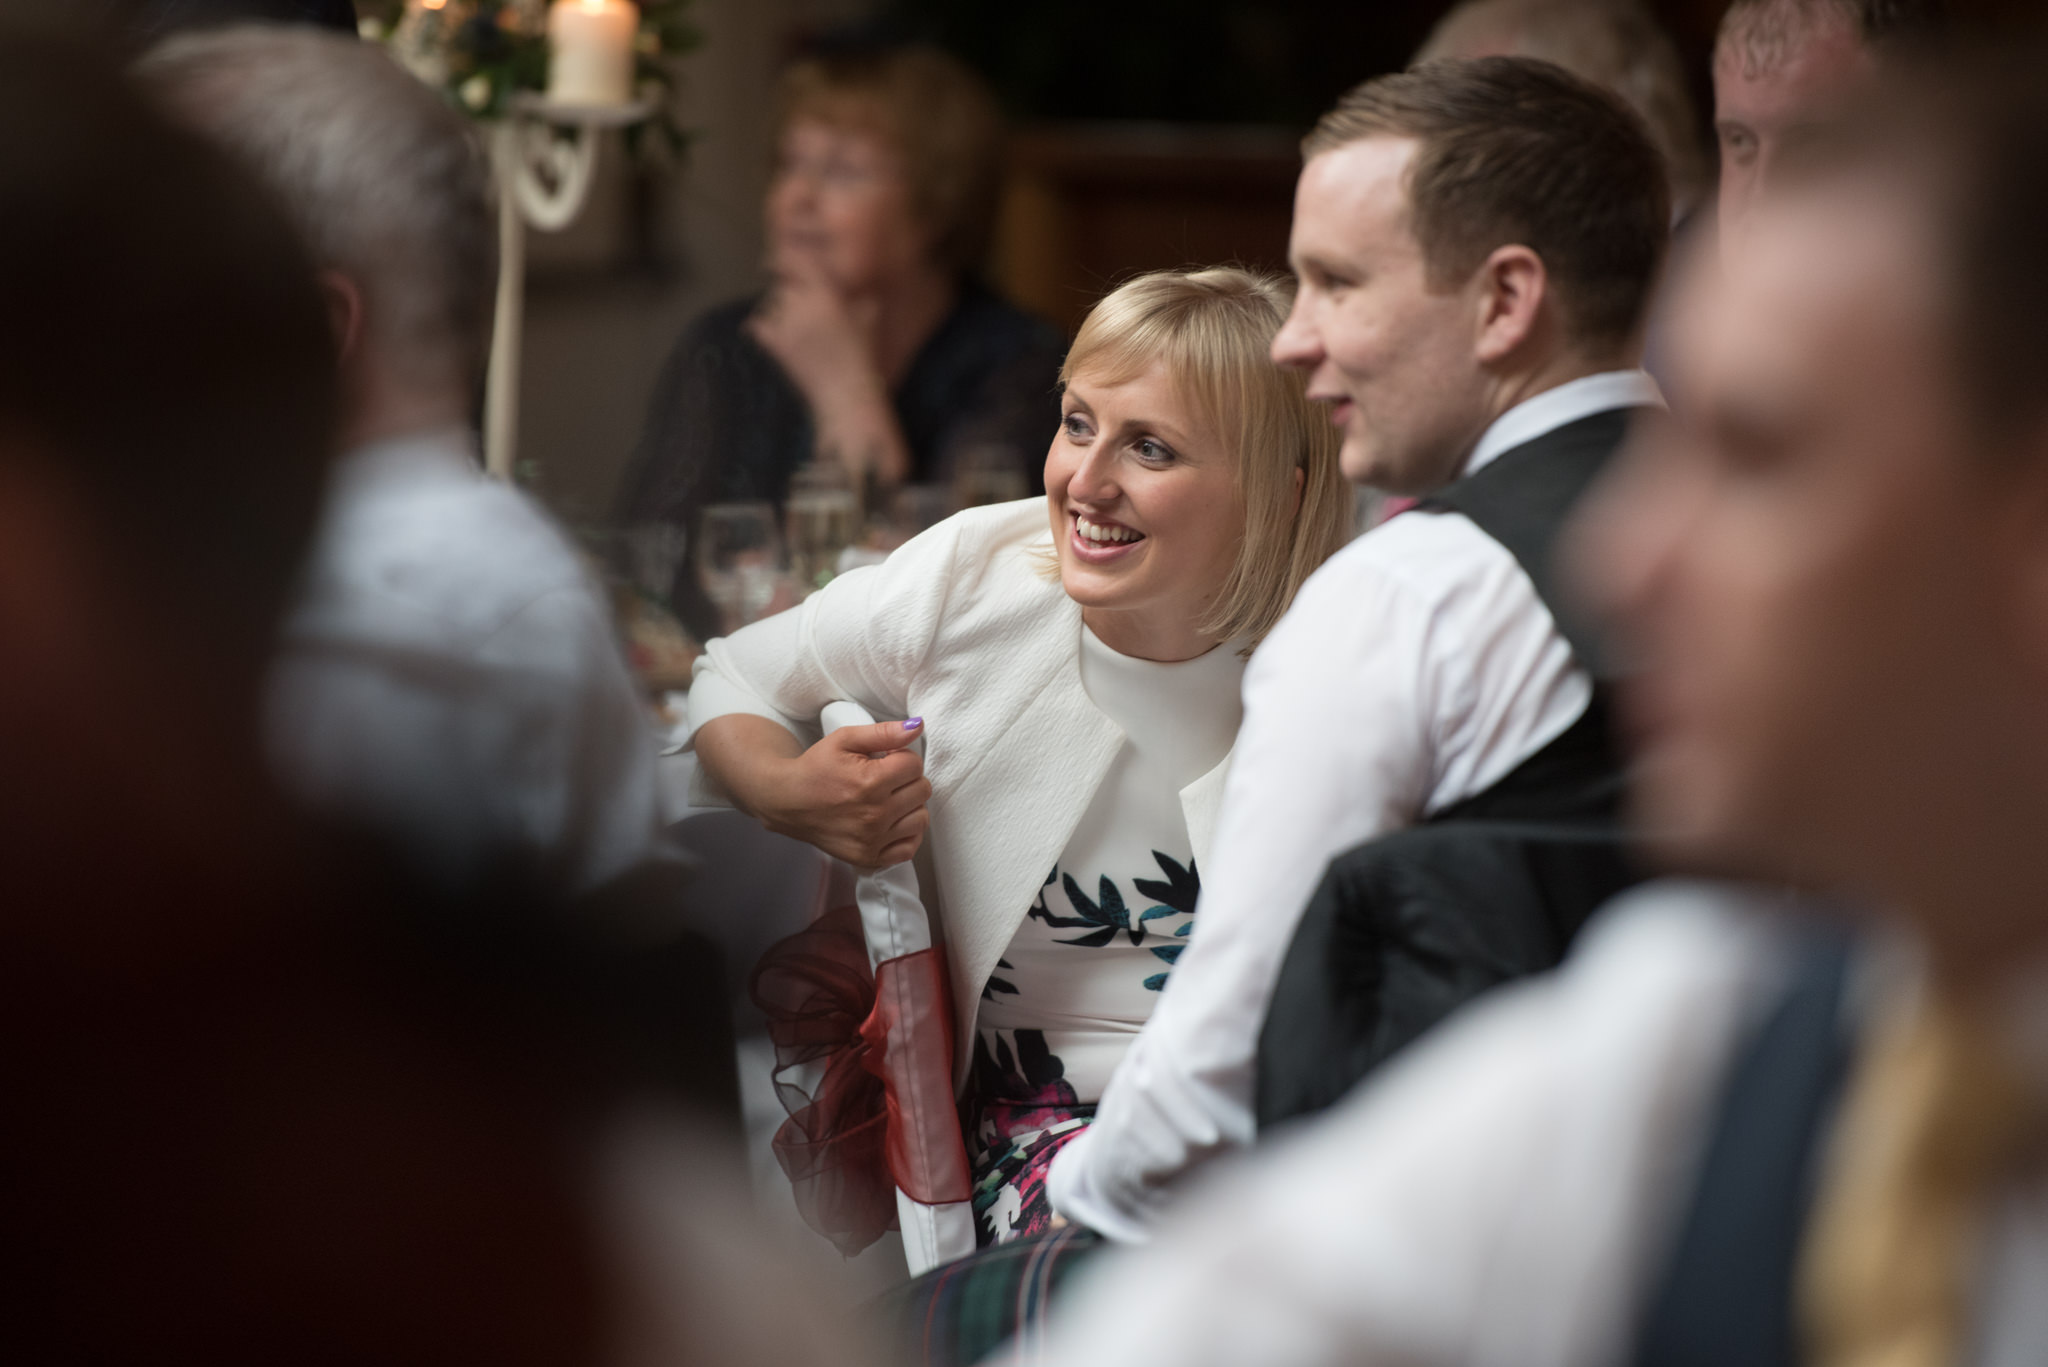 Eilidh and Scott's wedding - The Cruin - Loch Lomond - © Julie Broadfoot / Photography by Juliebee